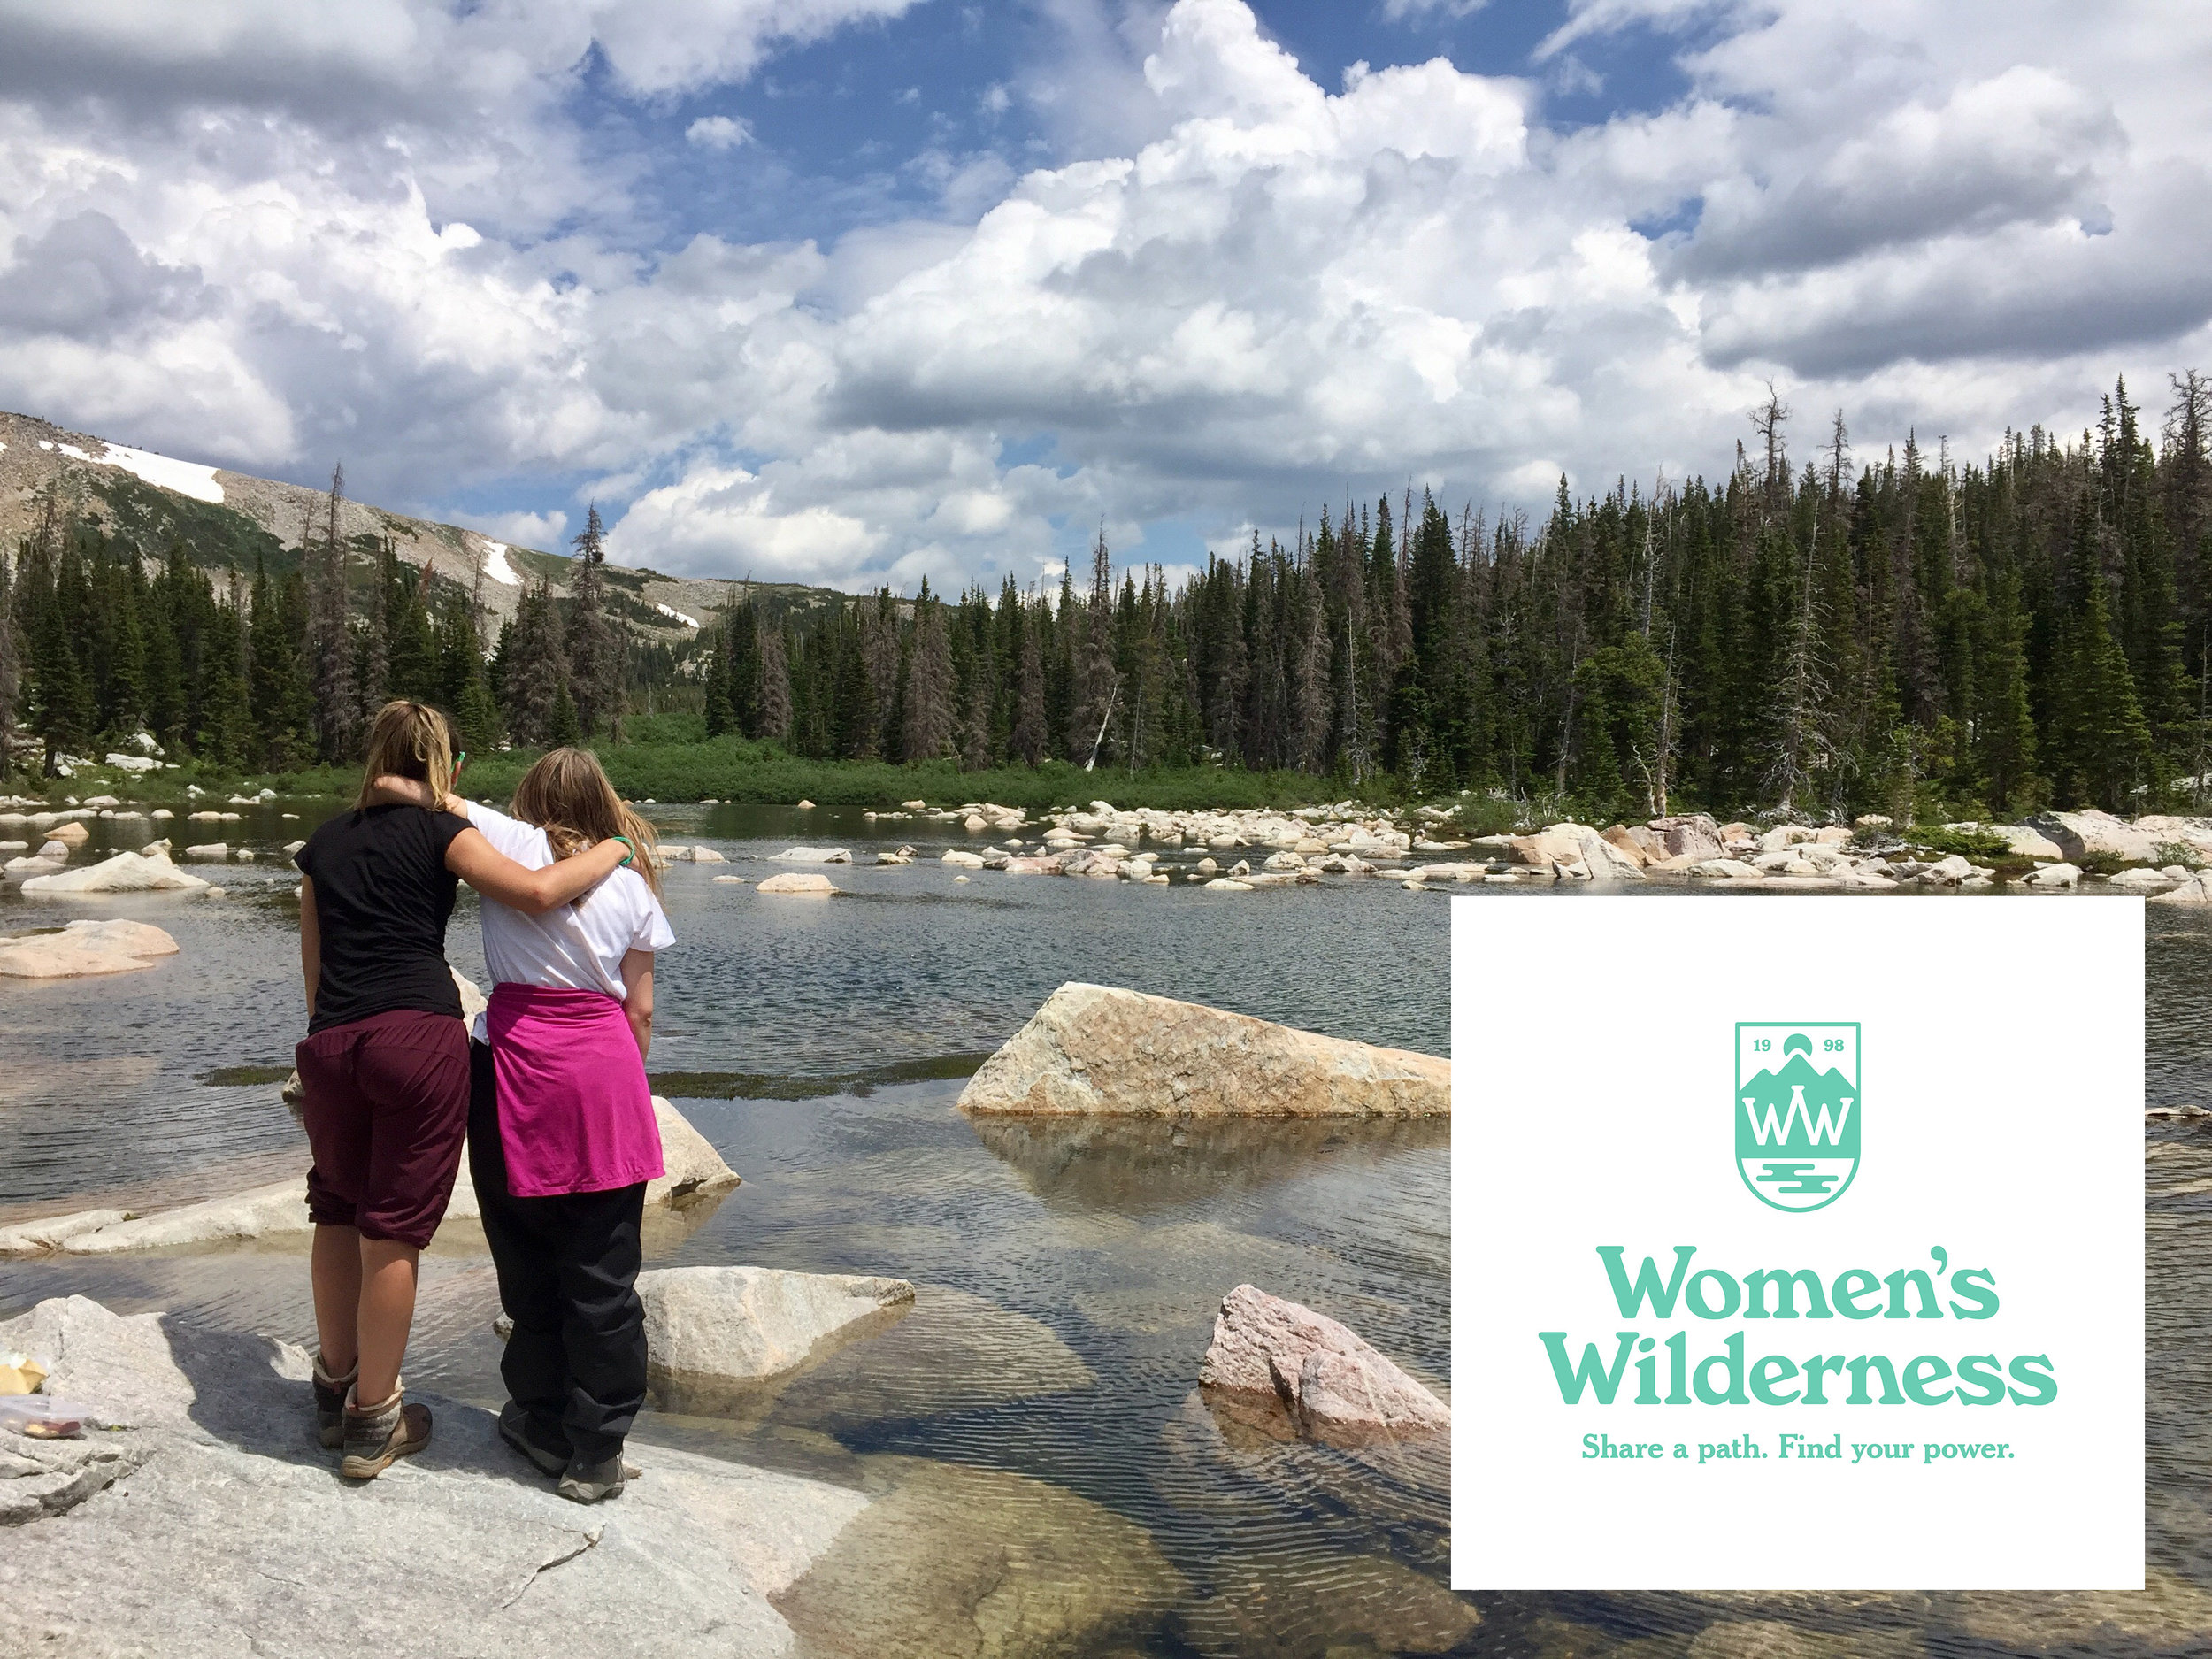 We're proud to support The Women's Wilderness Institute by offering annual scholarships to send young women on Leadership Courses. Click the photo to learn more!